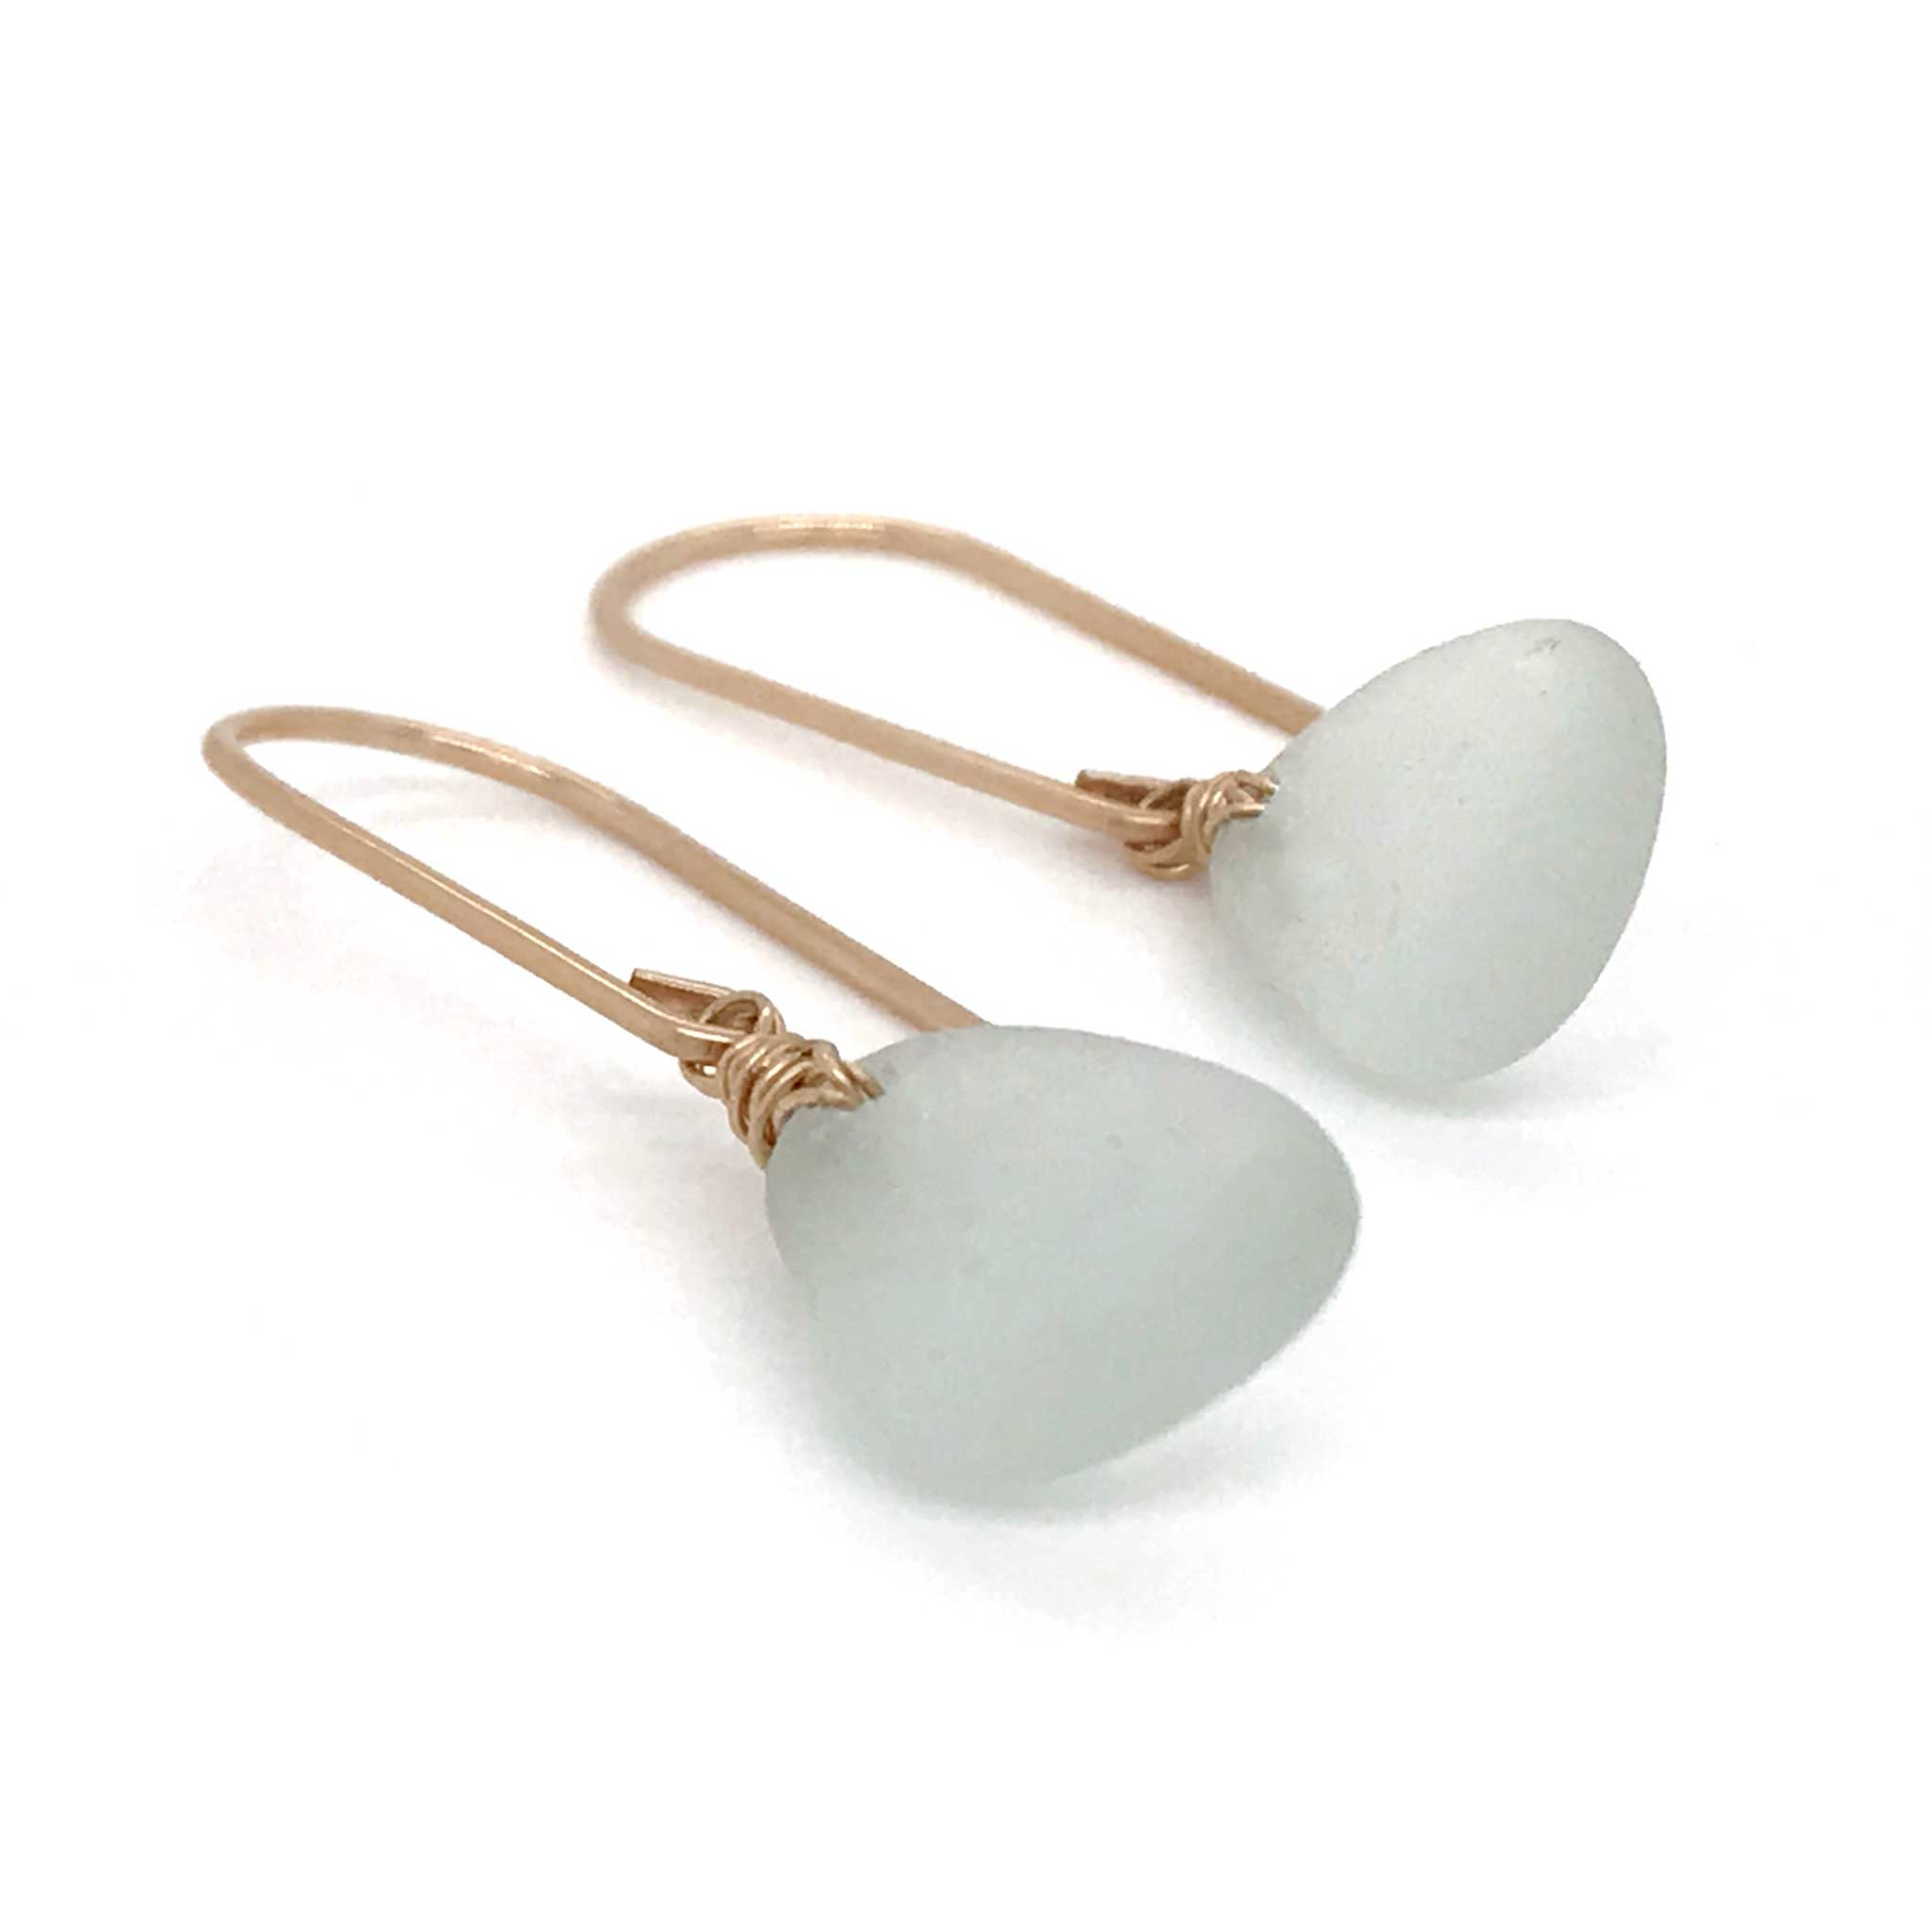 seafoam sea glass earrings gold kriket broadhurst jewelry Sydney